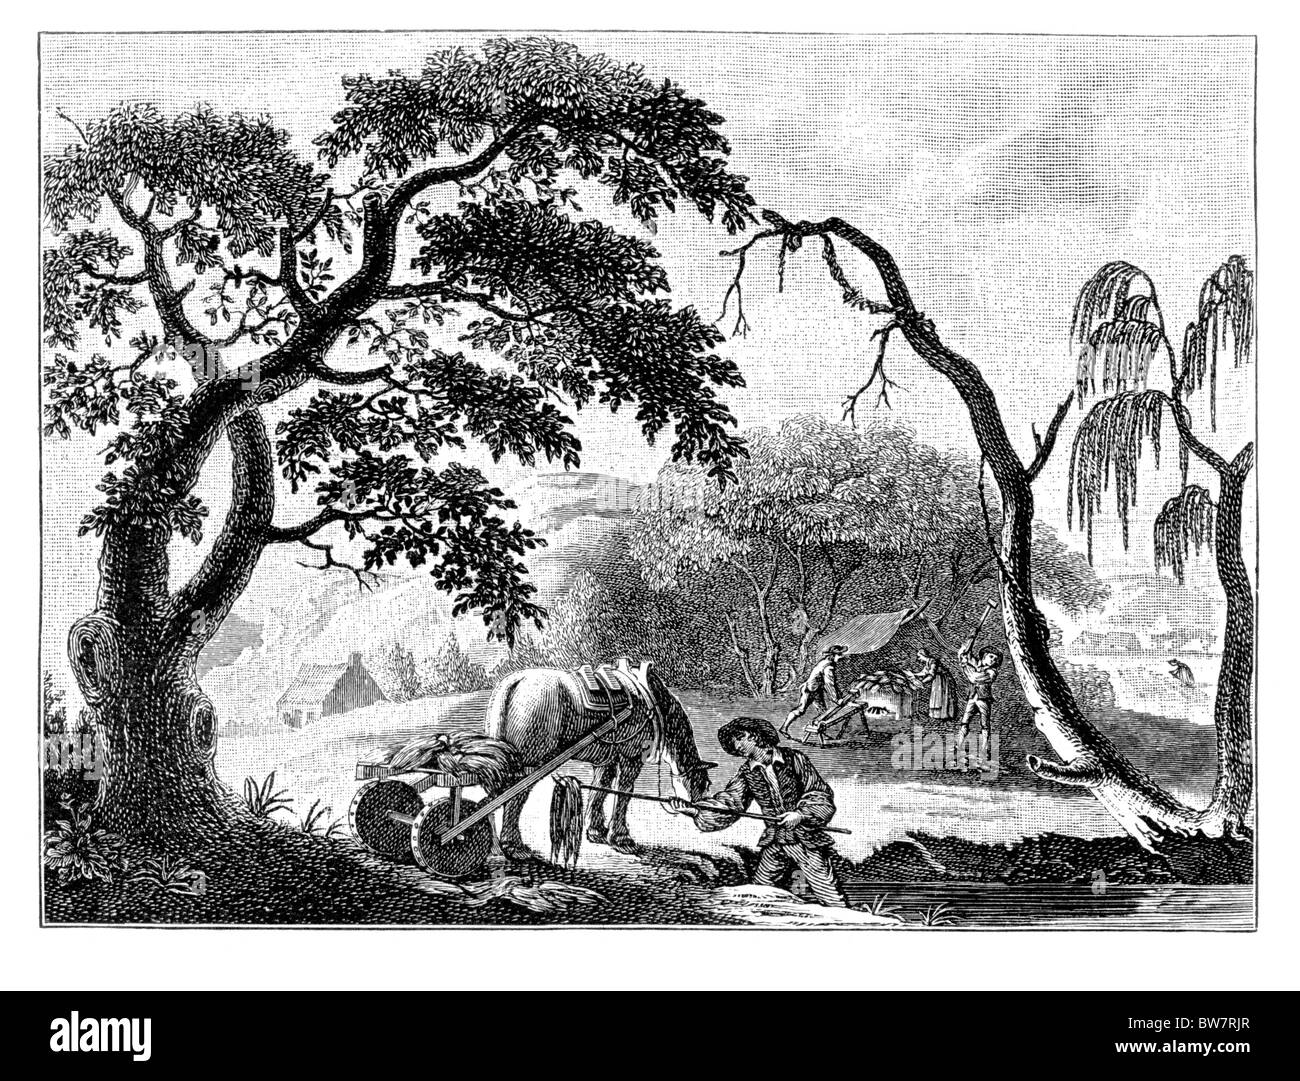 The Linen Industry in the 18th Century; Taking flax out of bog, spreading to dry, storing, beetling and breaking; - Stock Image